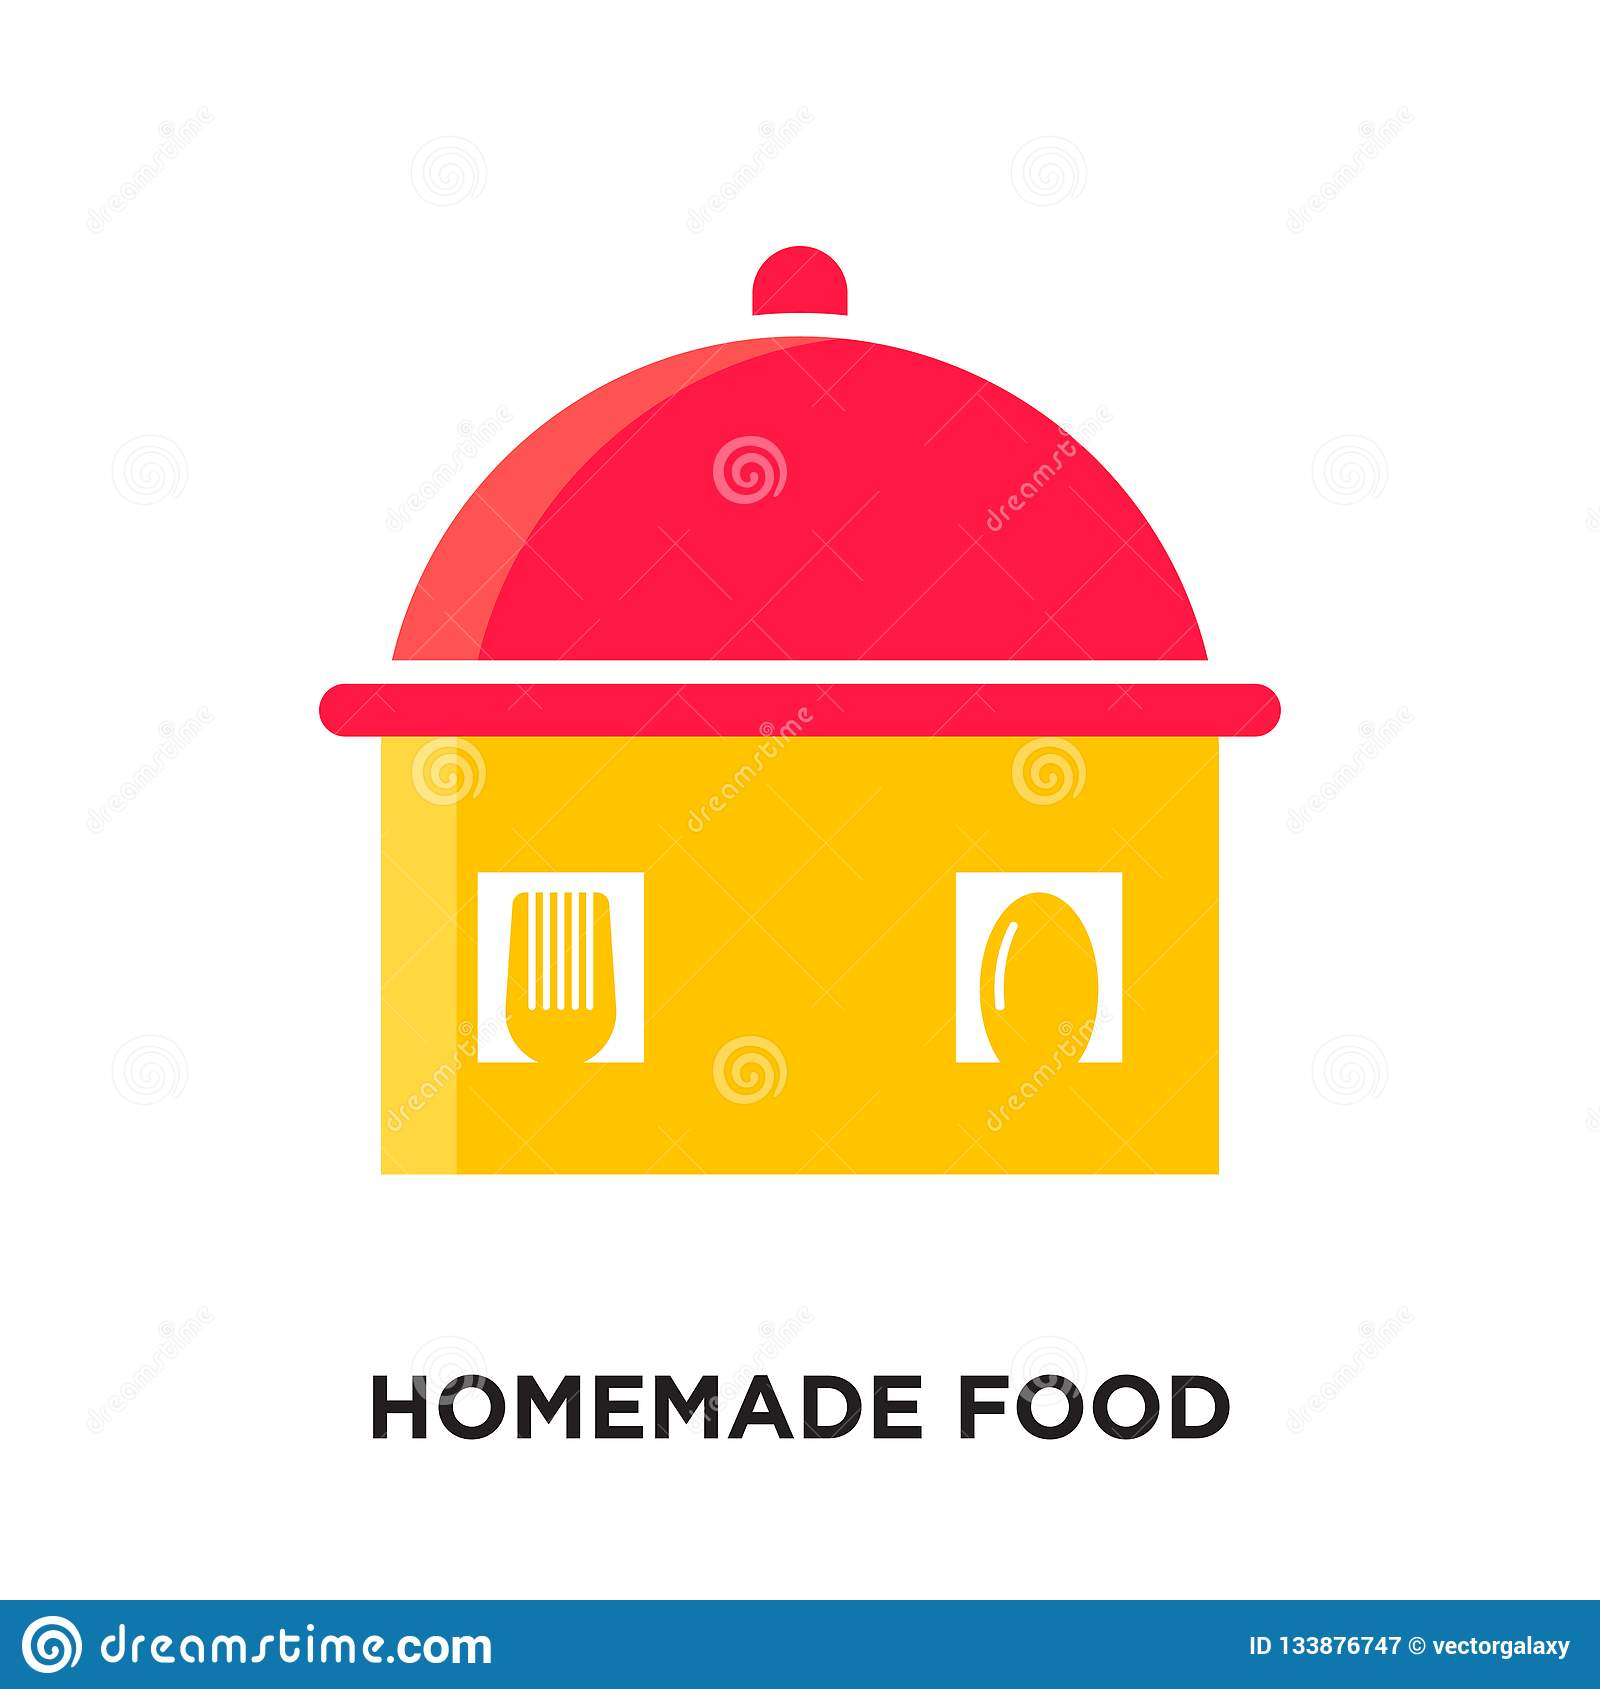 Homemade Food Logo Isolated On White Background For Your